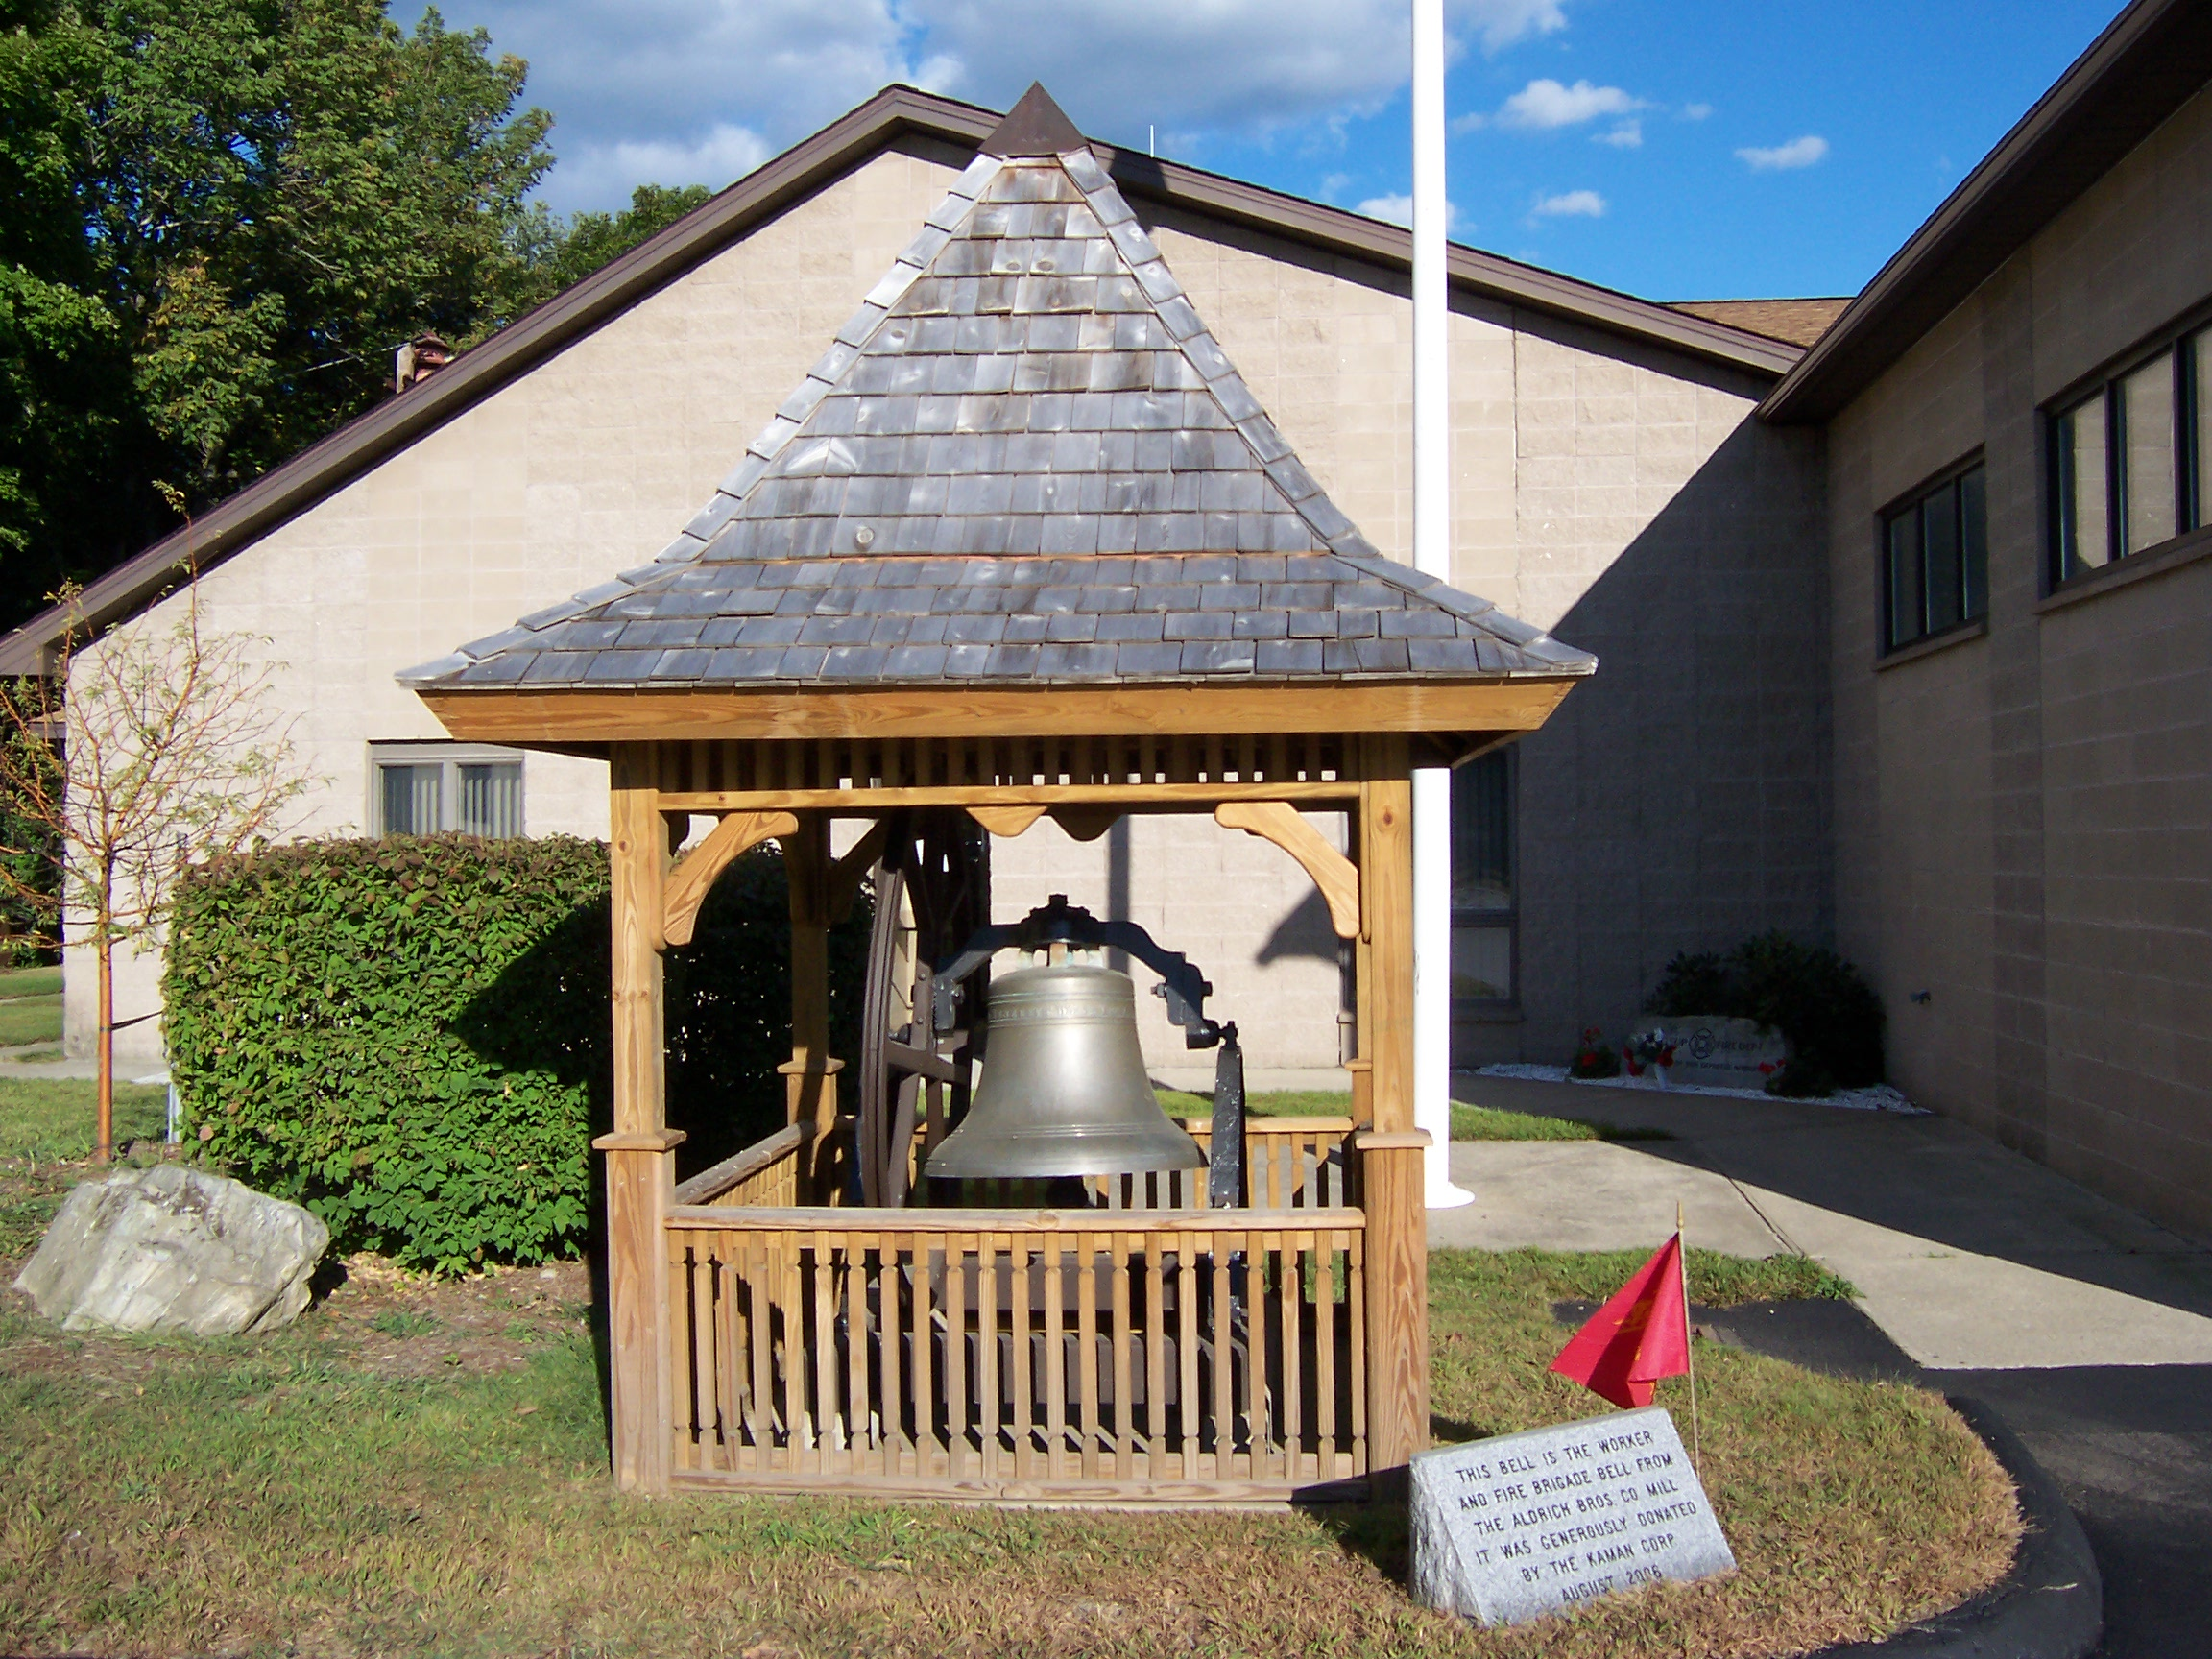 Bell and Gazebo at Moosup Fire Department